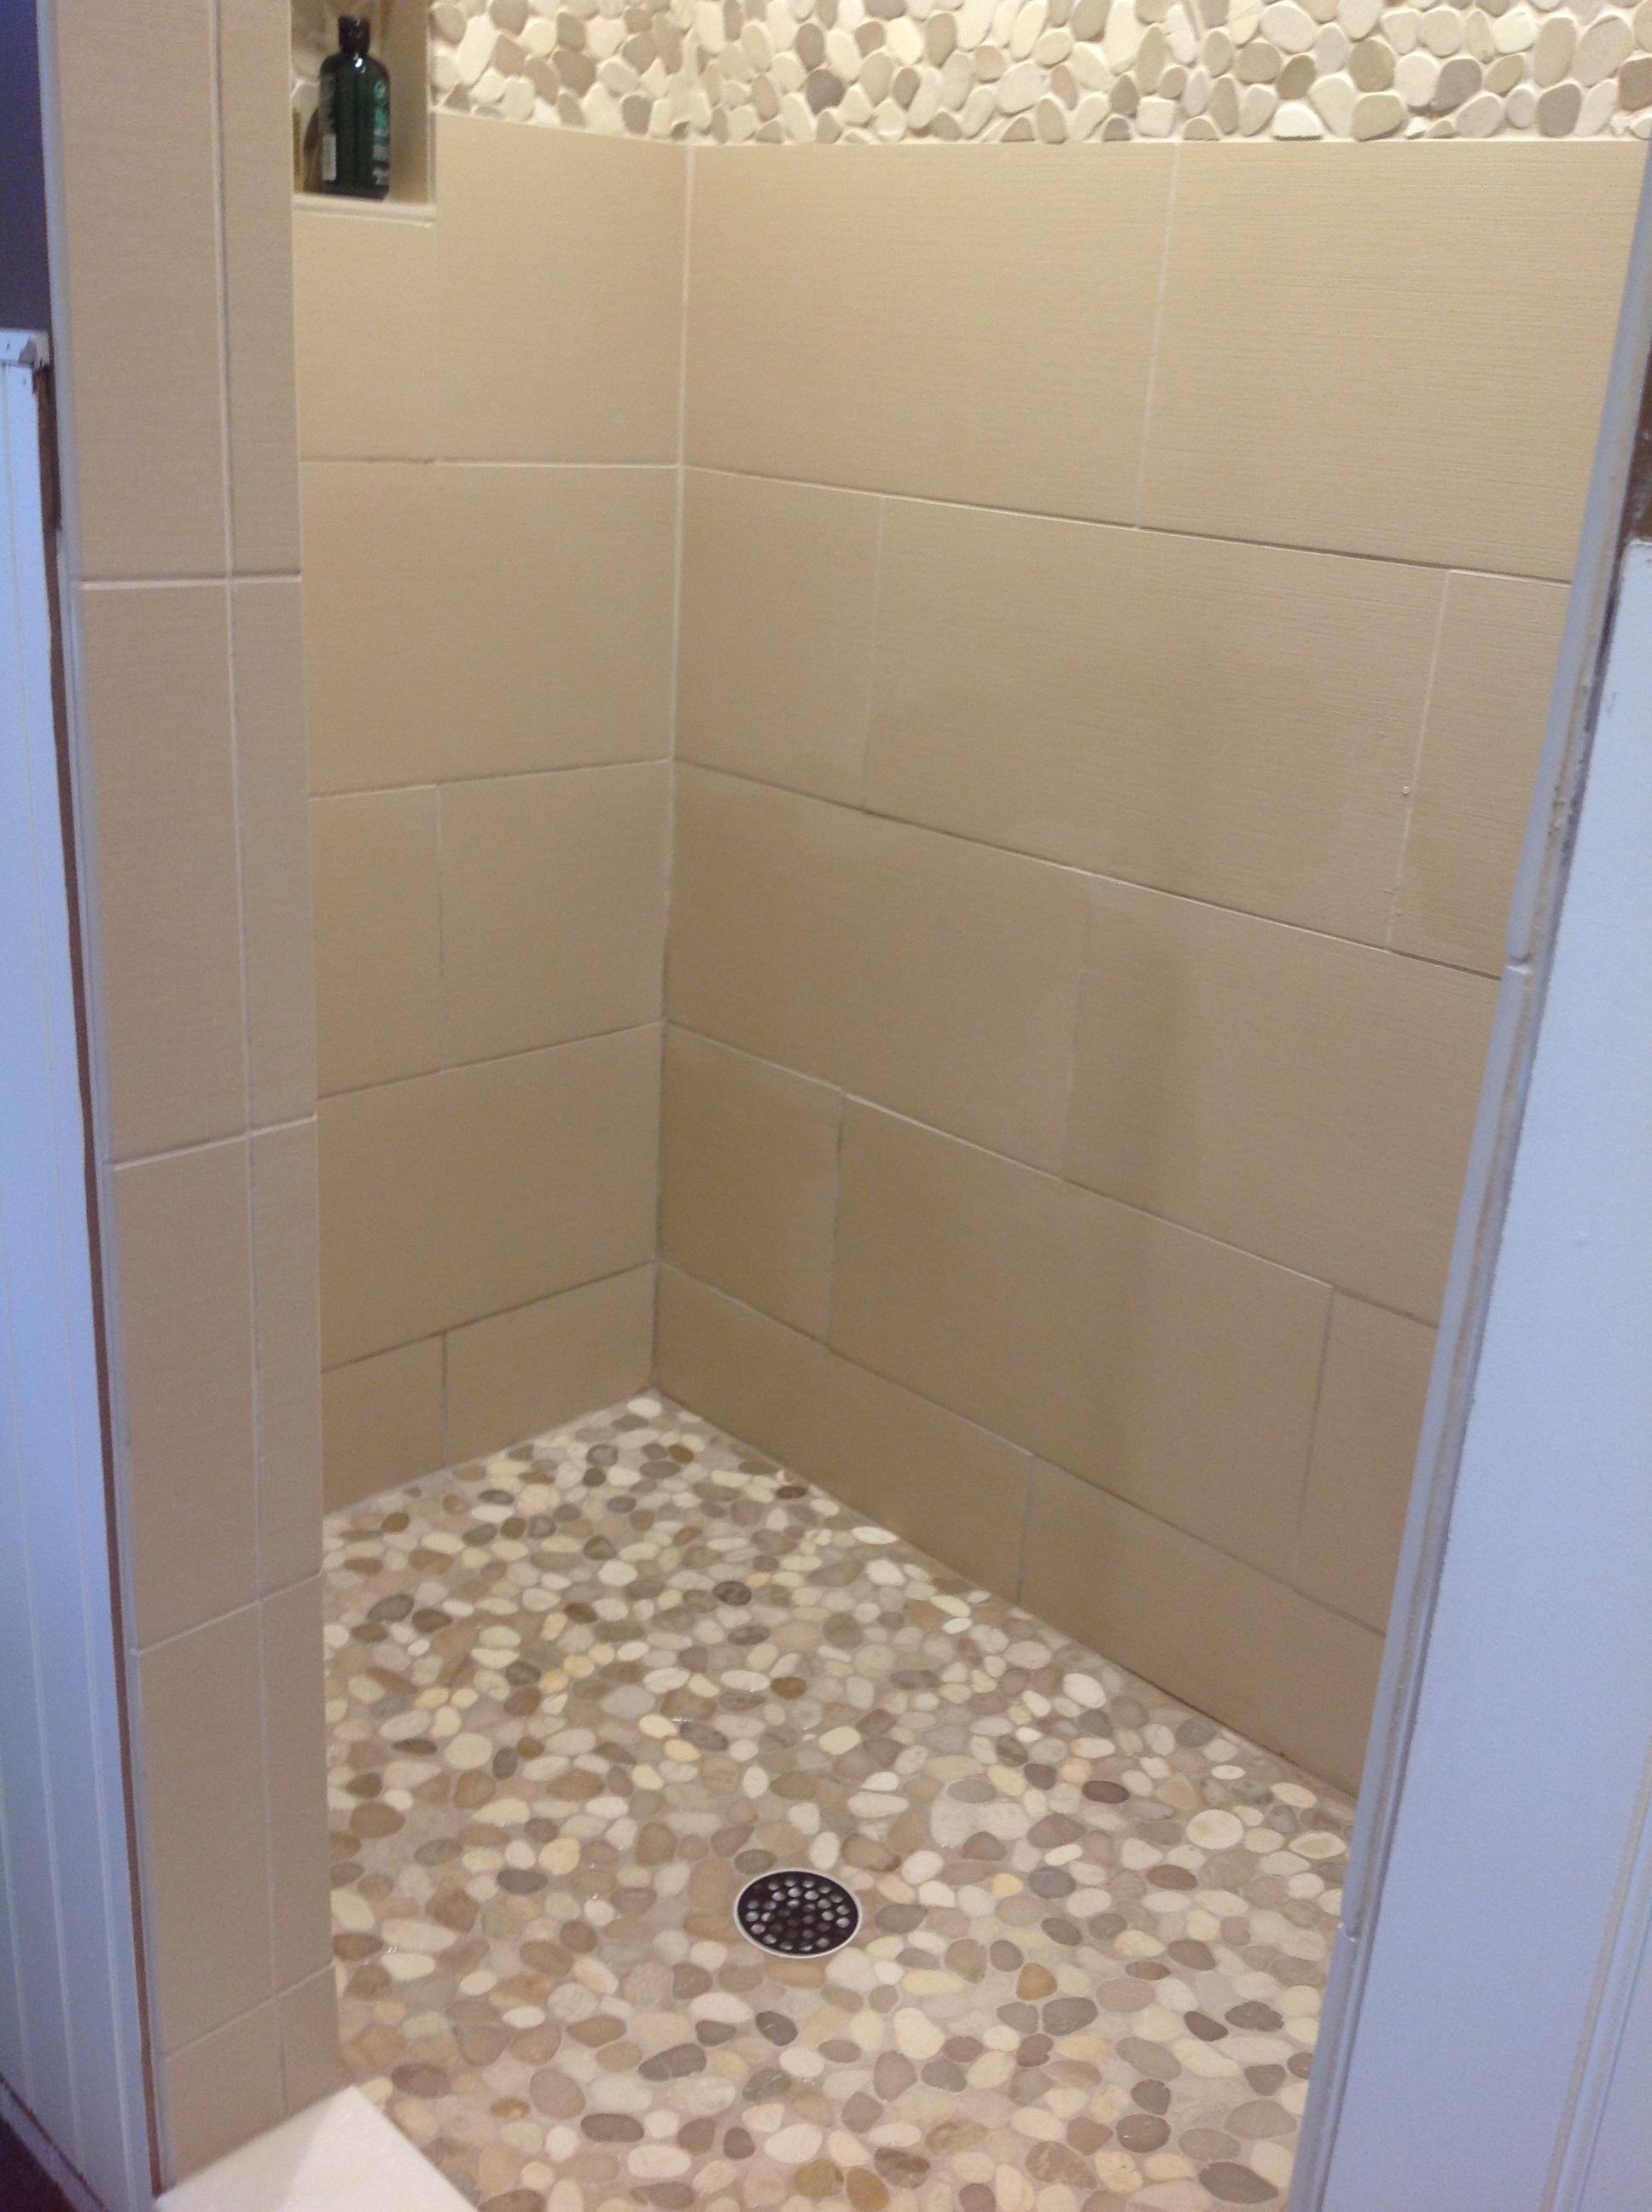 Sliced-Tan-and-White-Pebble-Tile-Shower-Flooring